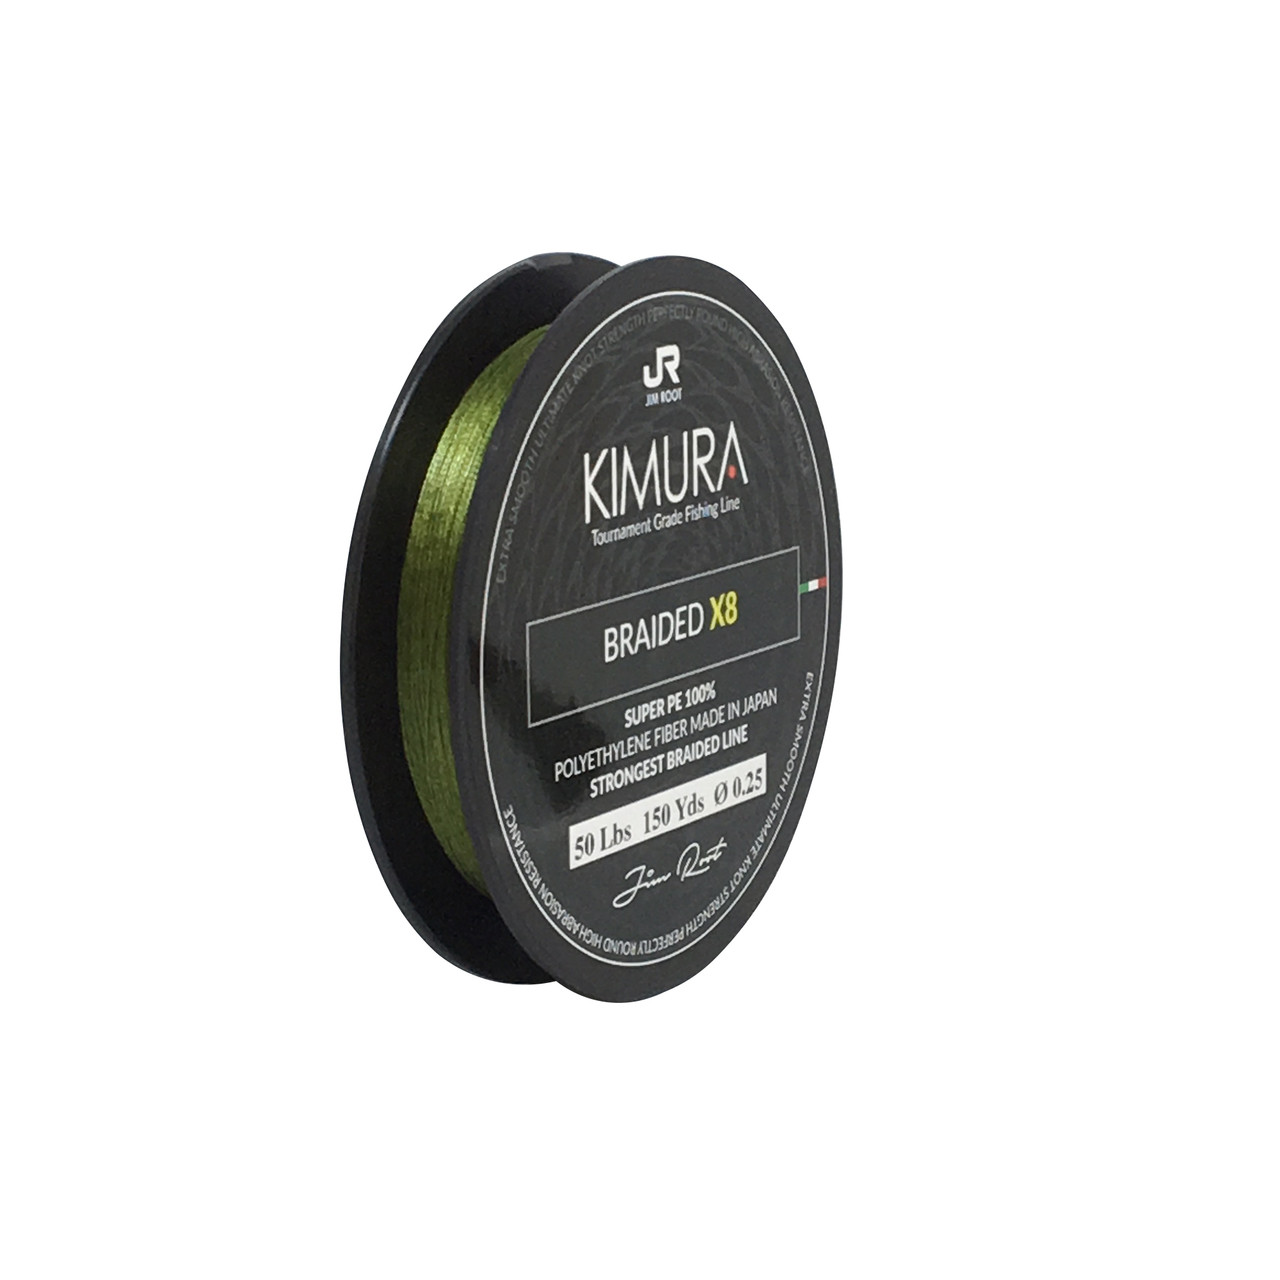 SteelShad Kimura Fishing Line - Braided x8